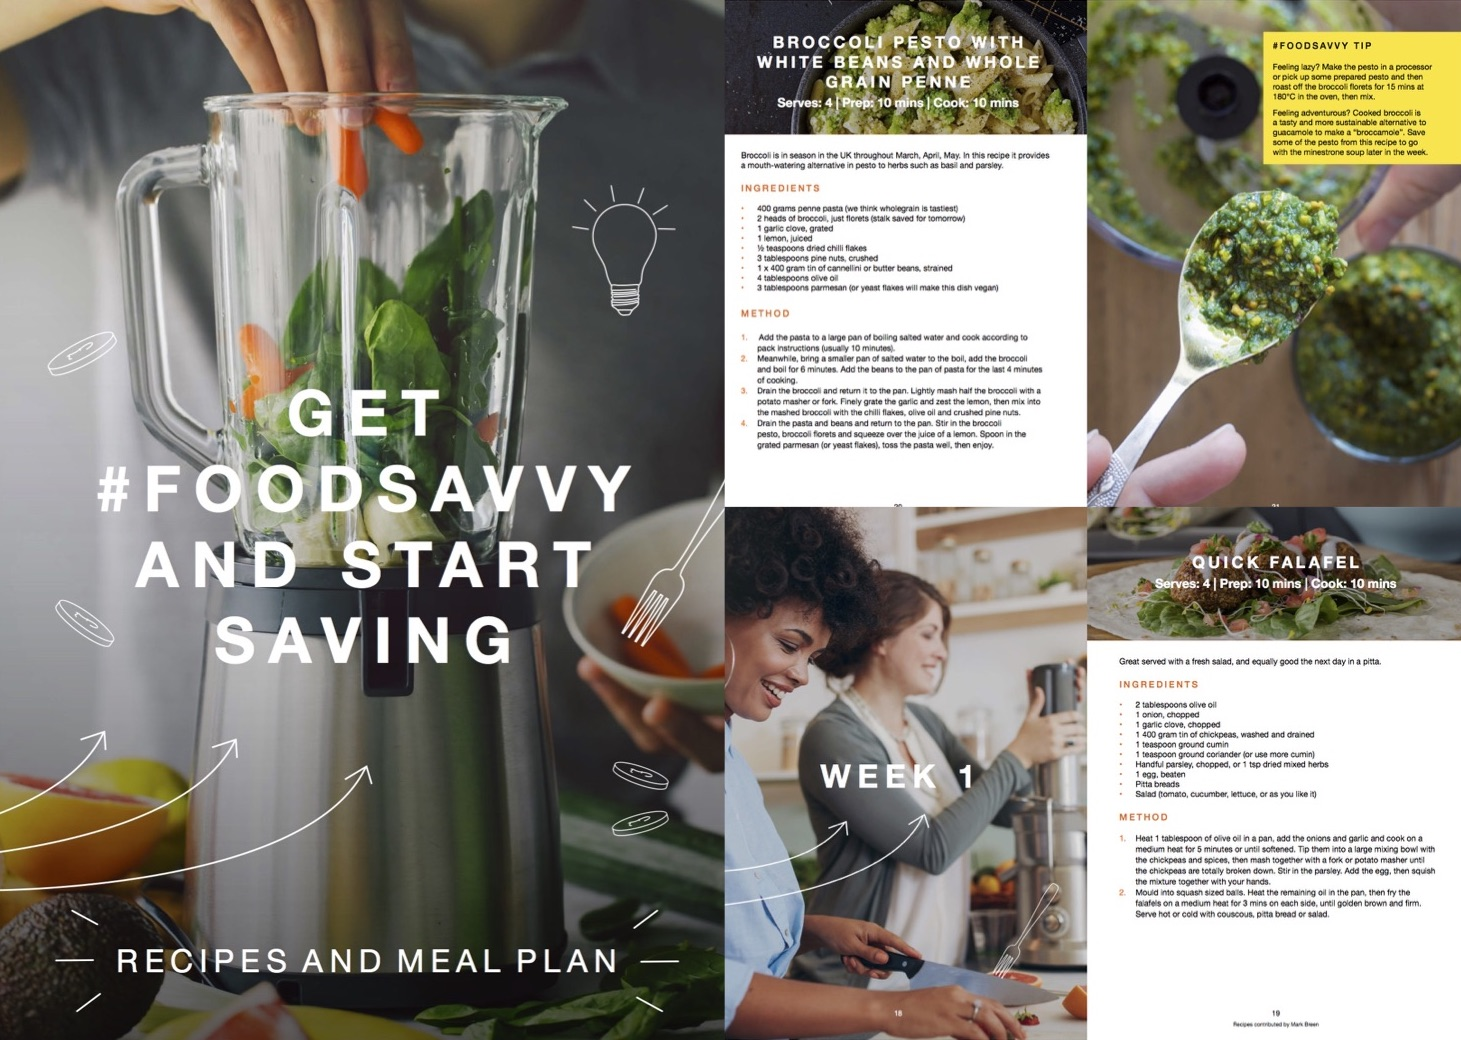 Get #FoodSavvy with our three week meal plan - Healthy, delicious and inexpensive meals designed to help you reduce food waste.